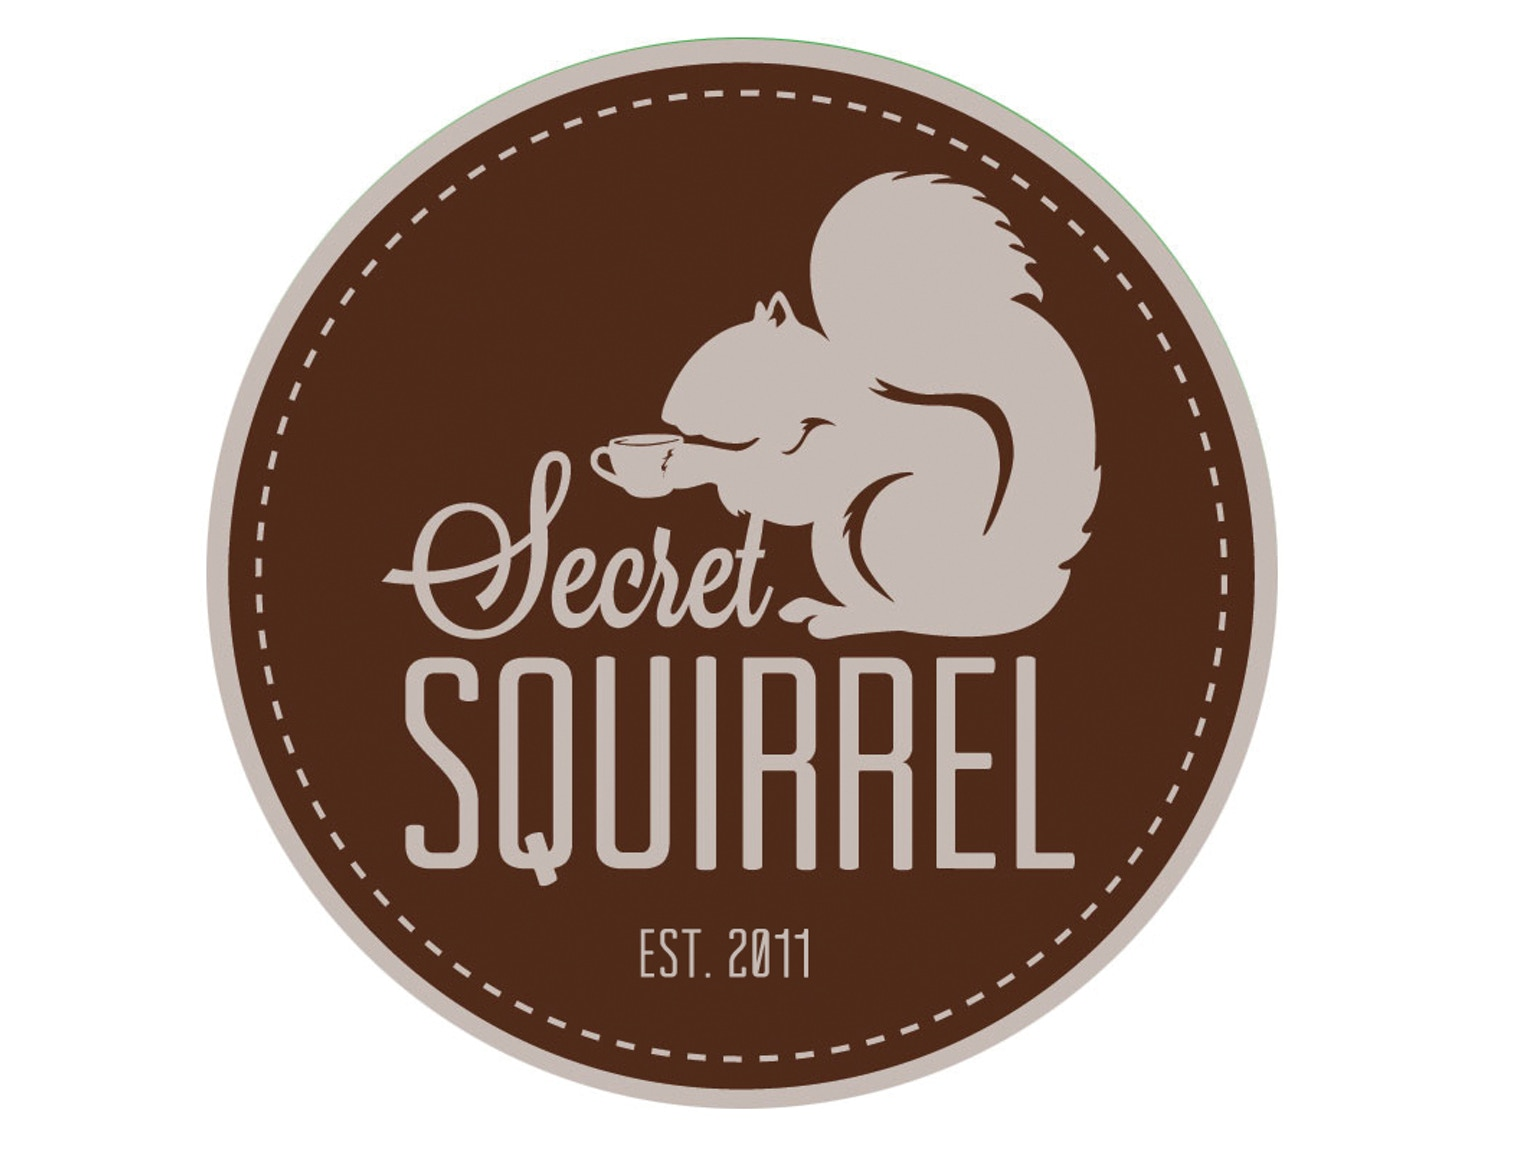 Secret Squirrel Limited Edition Cold Brew Coffee & Growler ...